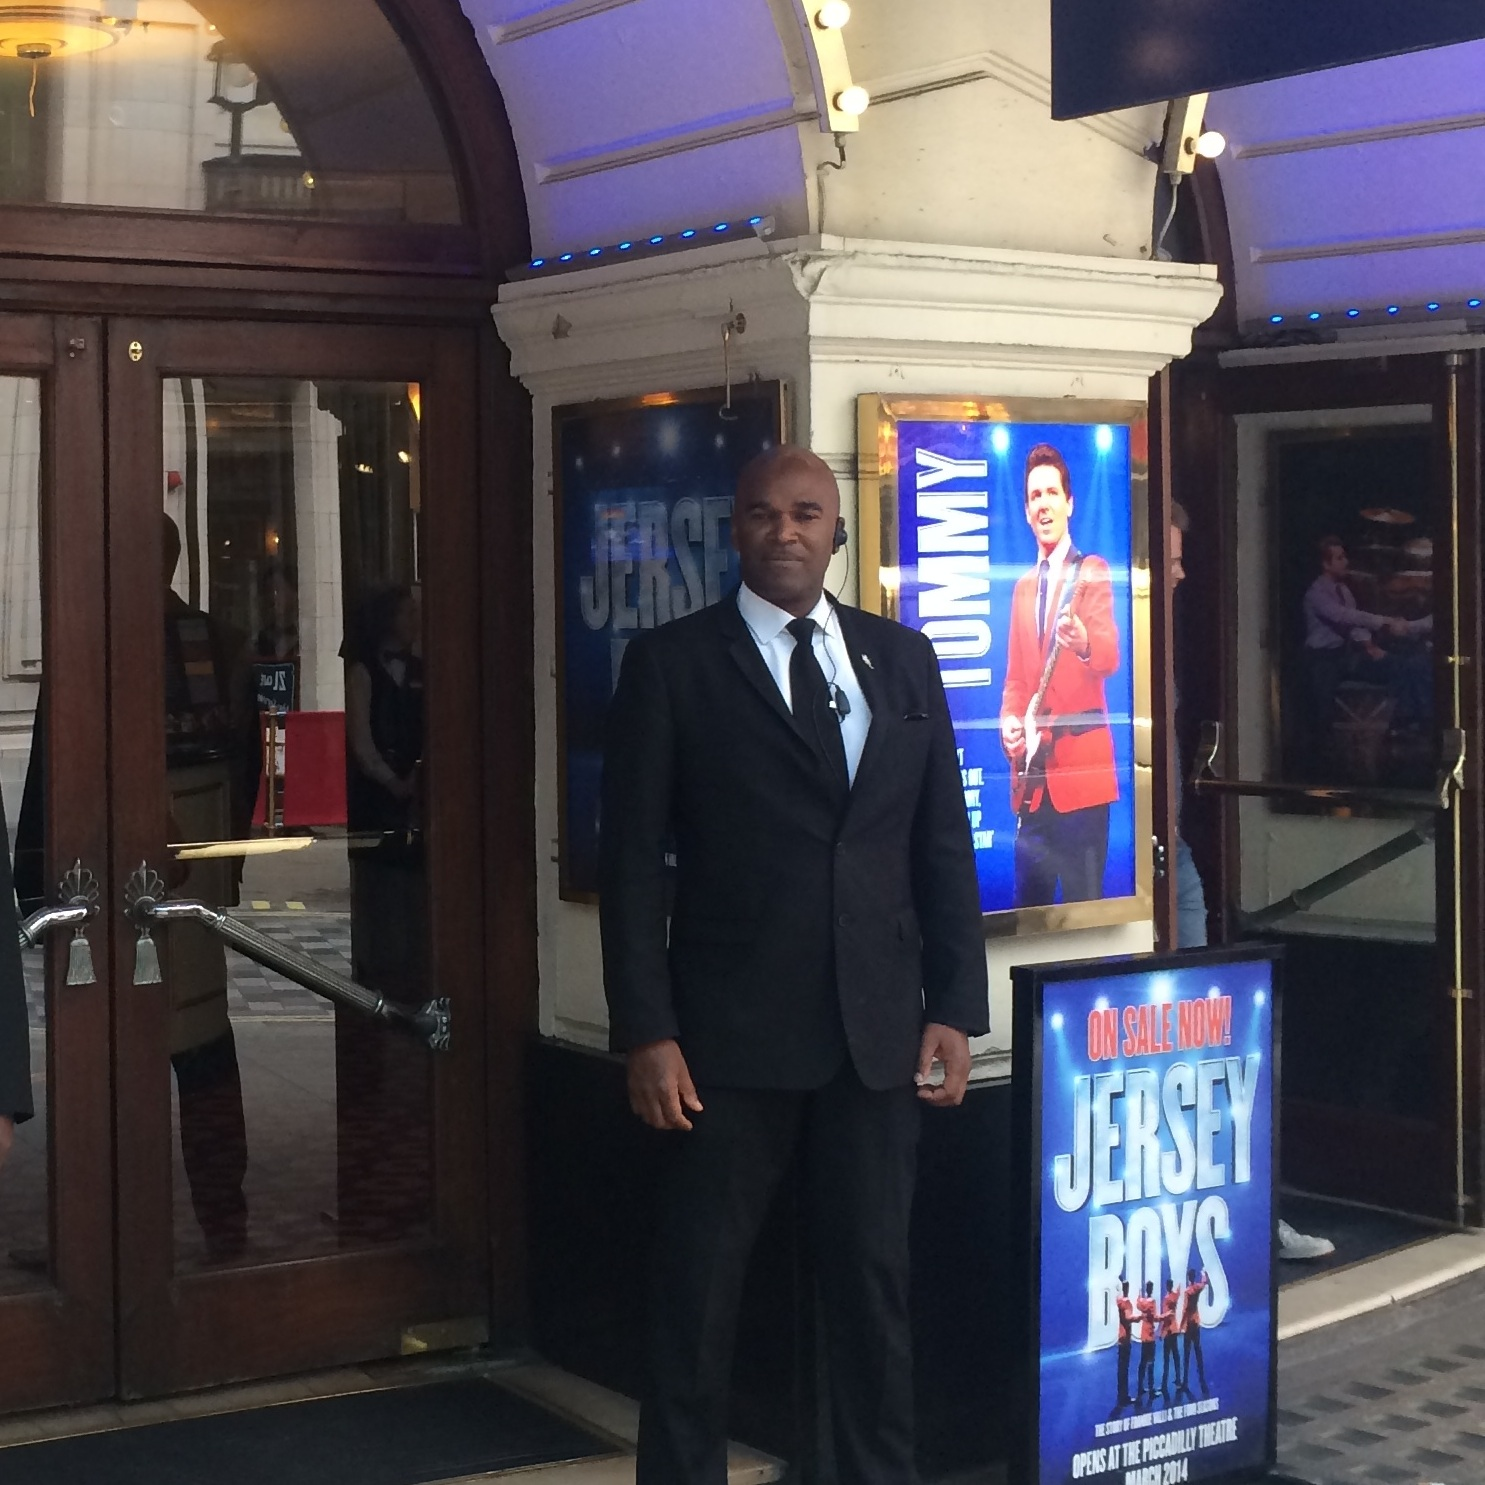 Lee/Marlon at the Piccadilly Theatre